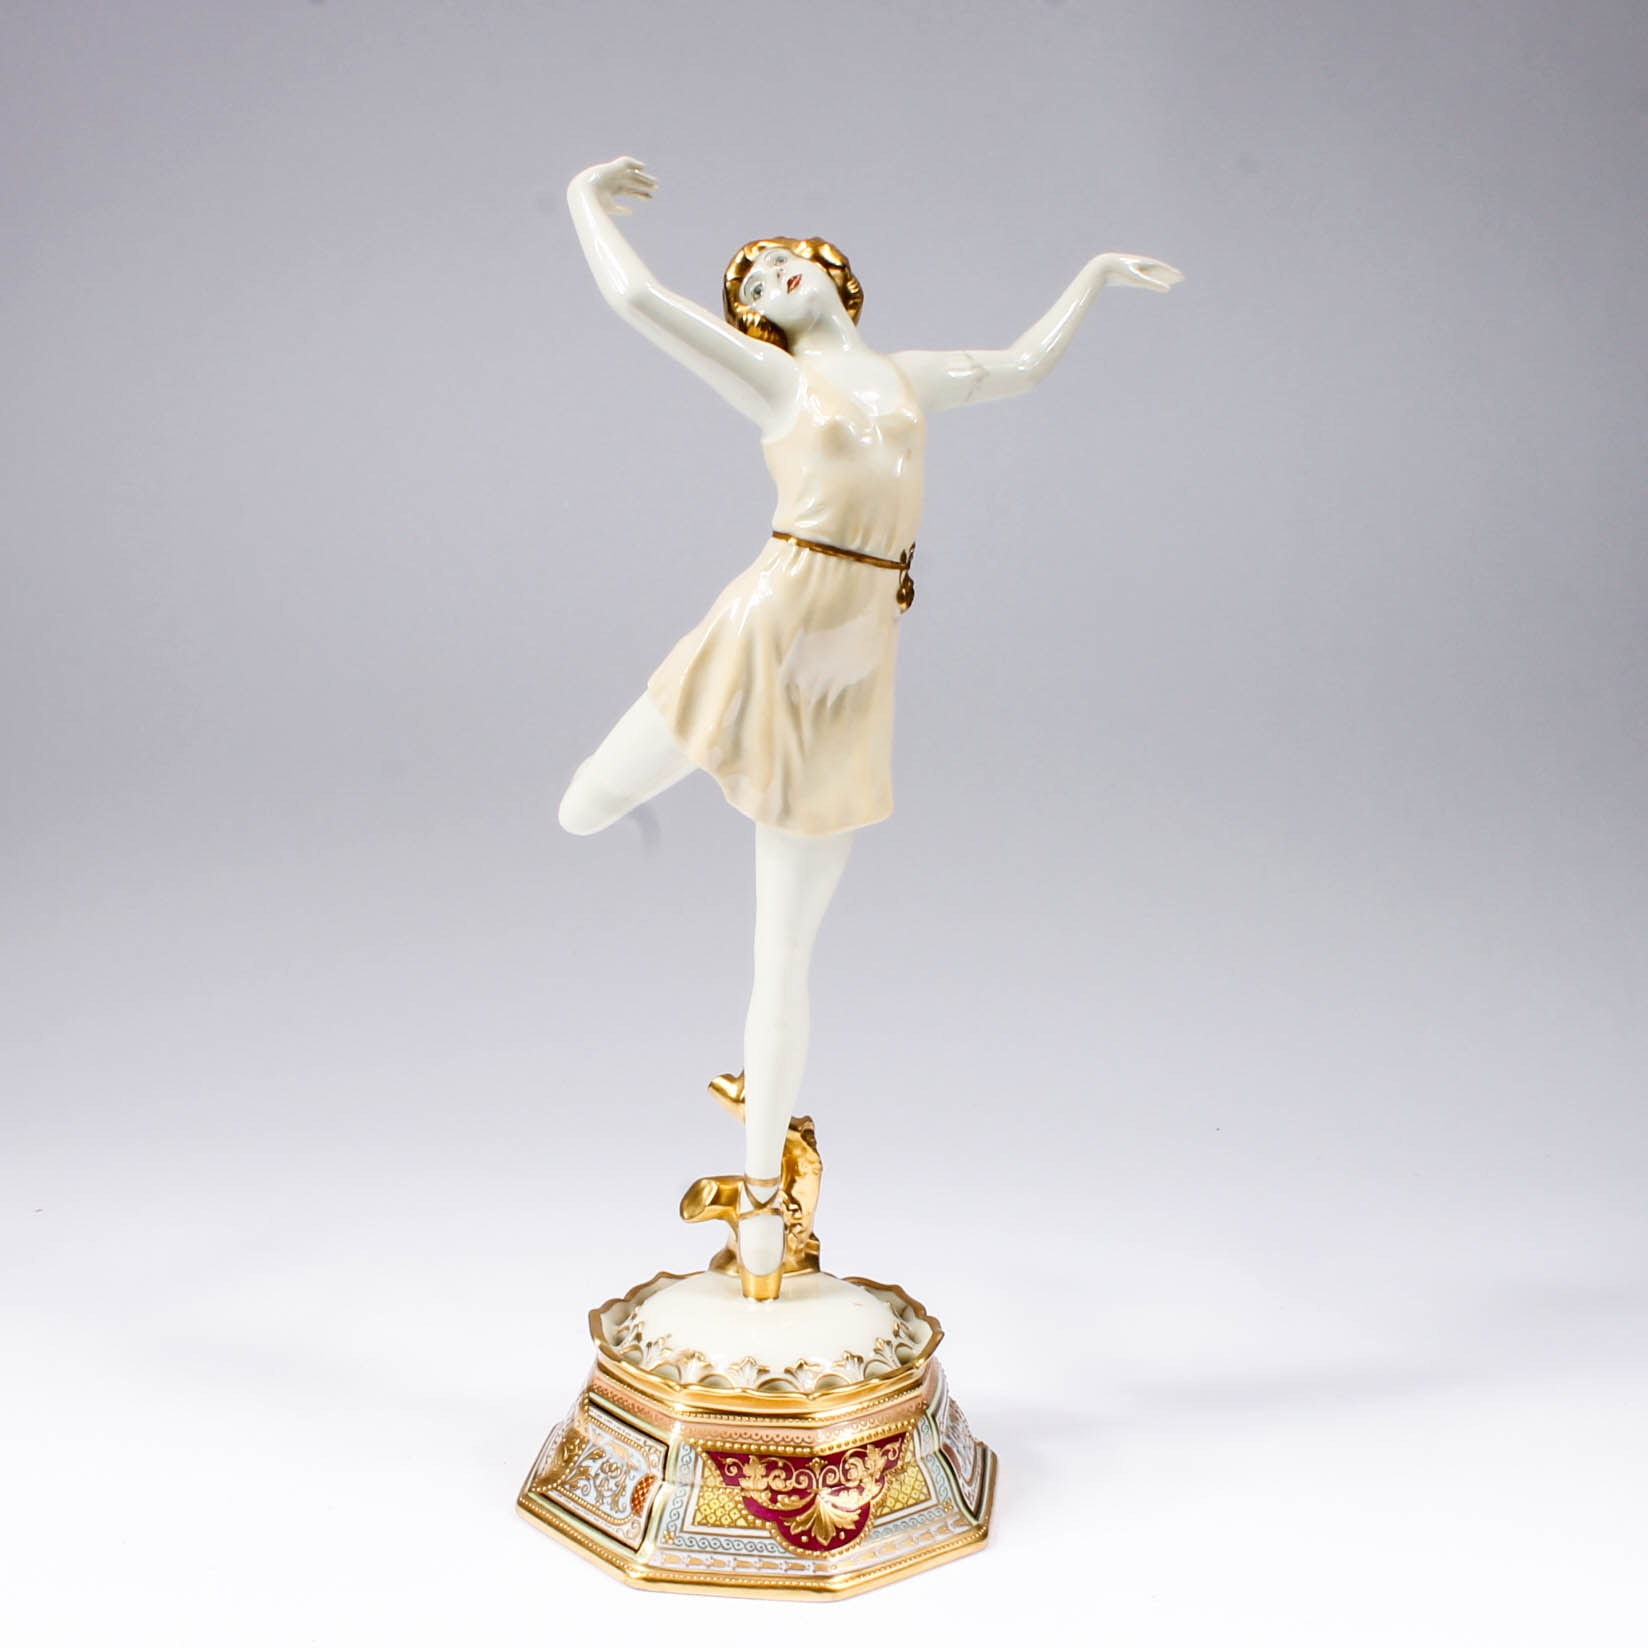 Early 20th-Century Hand-Painted Dresden Porcelain Ballet Dancer Figurine